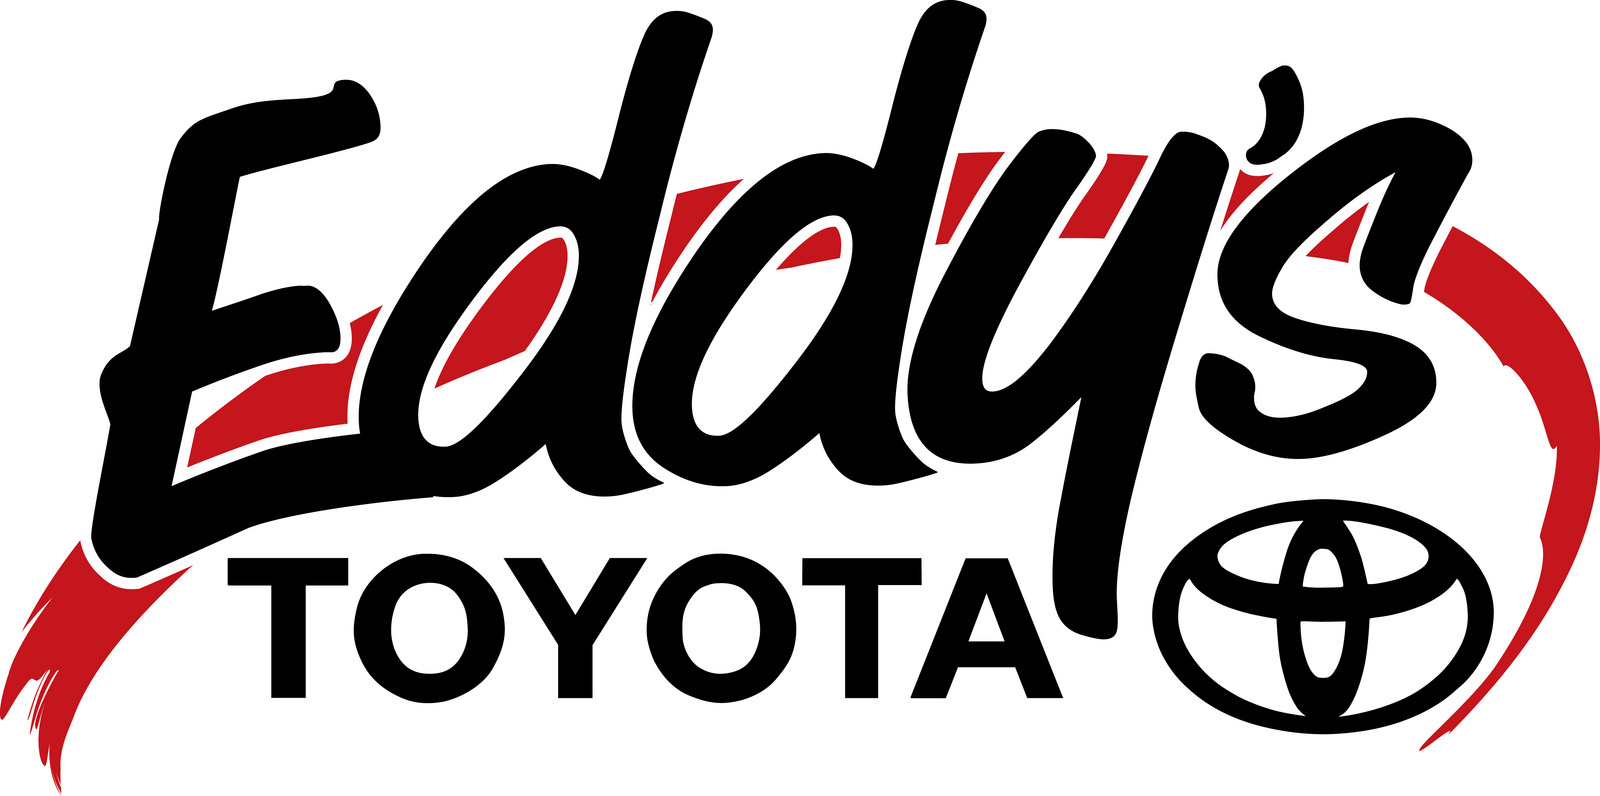 Exceptional Eddyu0027s Toyota Of Wichita   Wichita, KS: Read Consumer Reviews, Browse Used  And New Cars For Sale